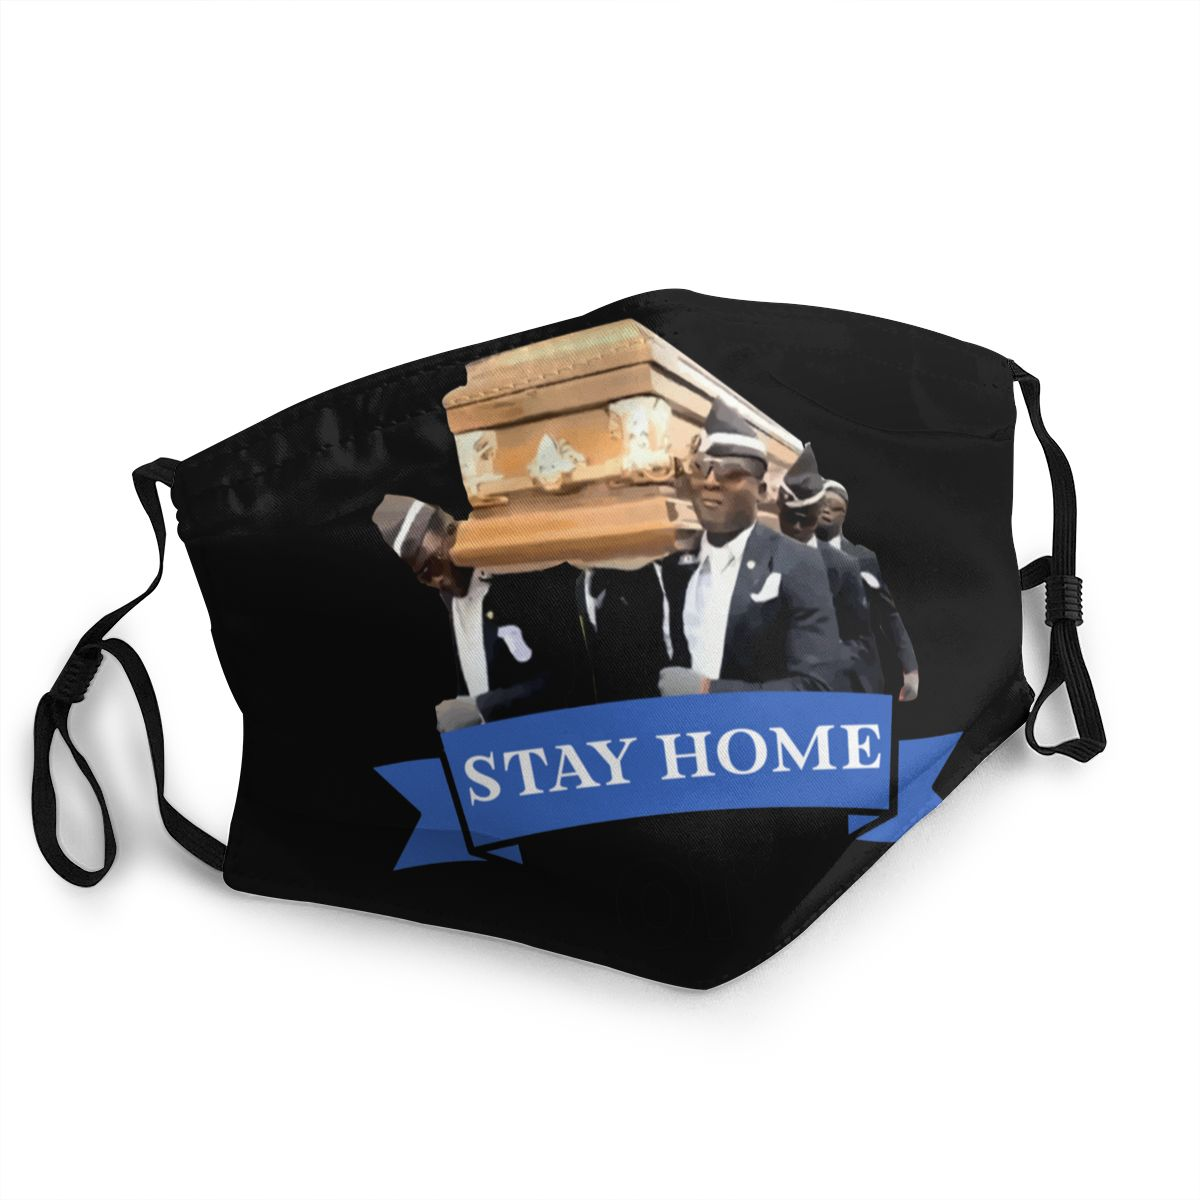 Coffin Dance Non-Disposable Face Mask Meme Funeral Pallbearers Anti Haze Dustproof Mask Protection Respirator Muffle